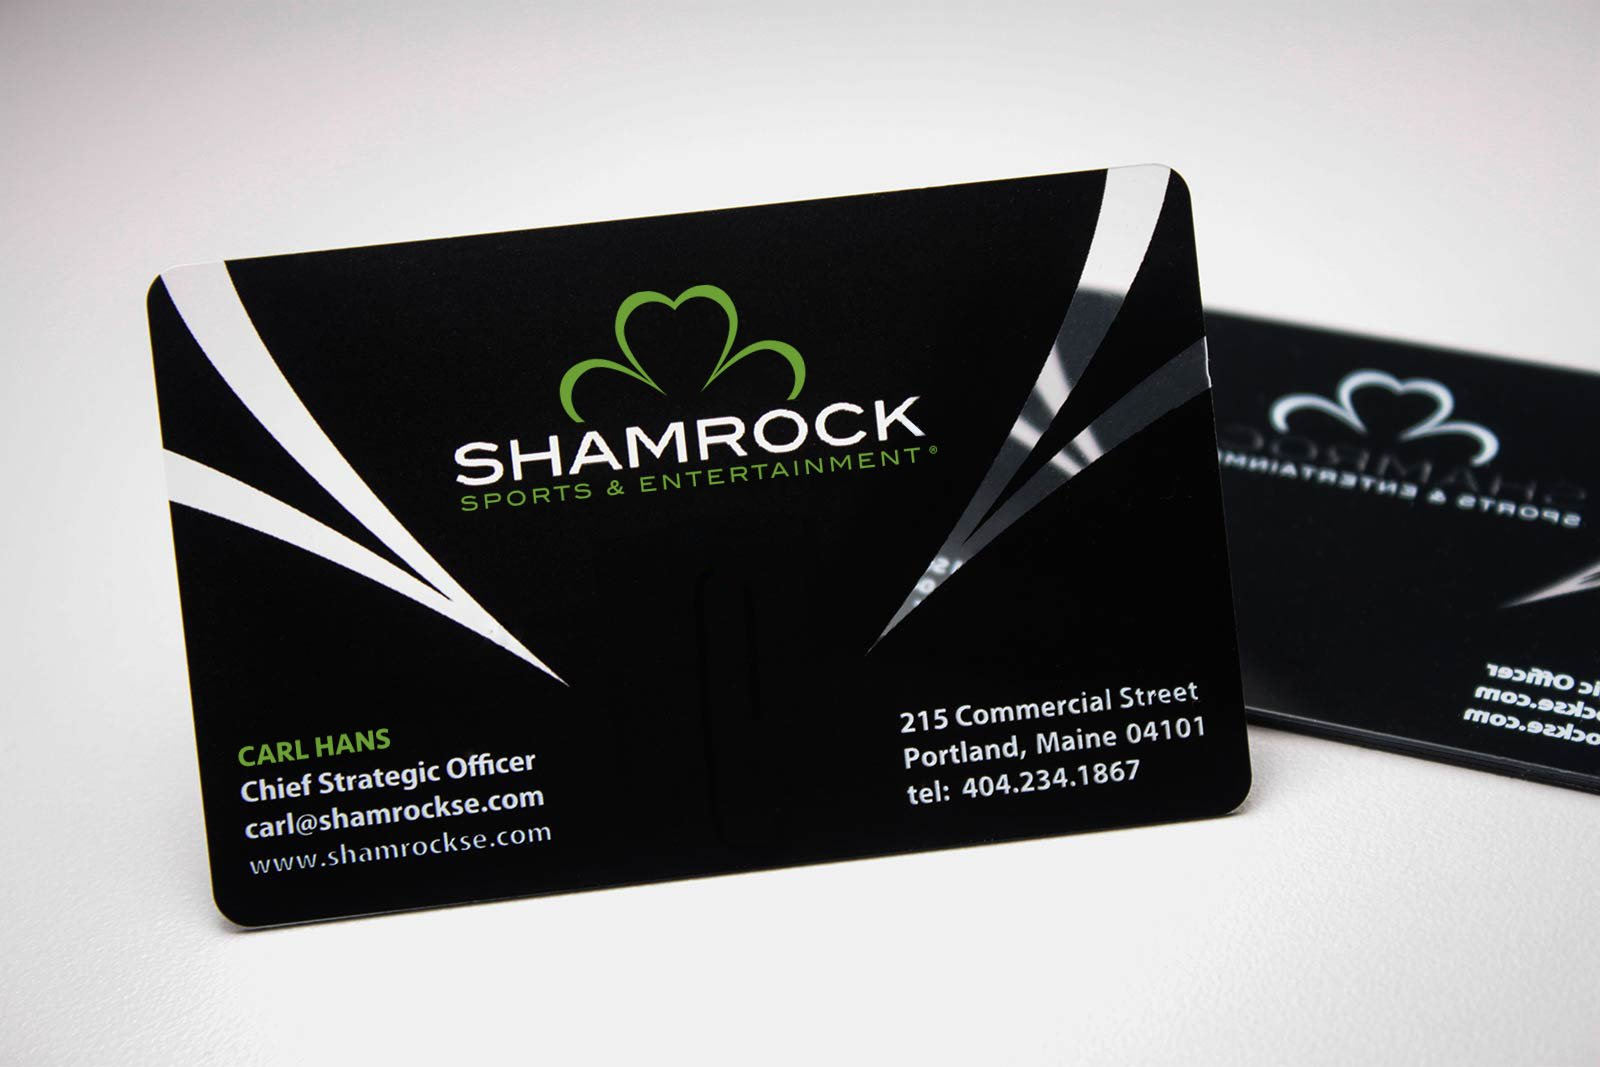 Shamrock Sports & Entertainment Business Cards